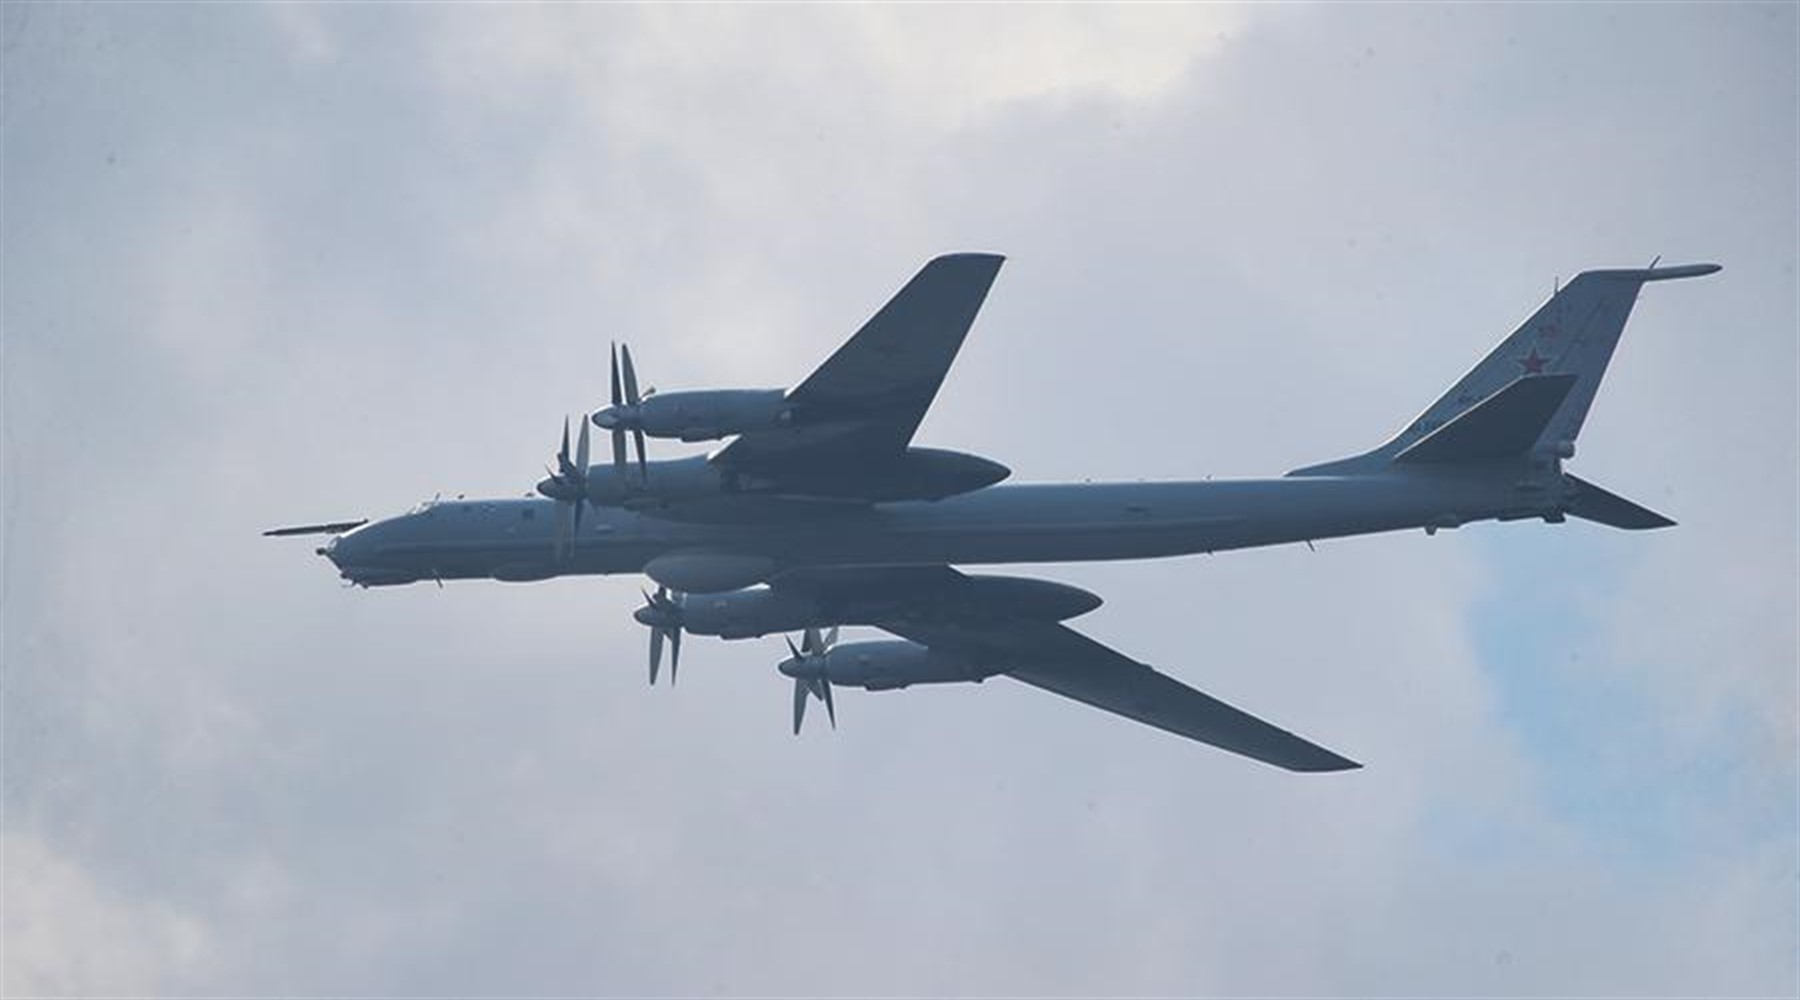 Photo of Northern fleet comments on the attempt to intercept  the Tu-142 over neutral waters